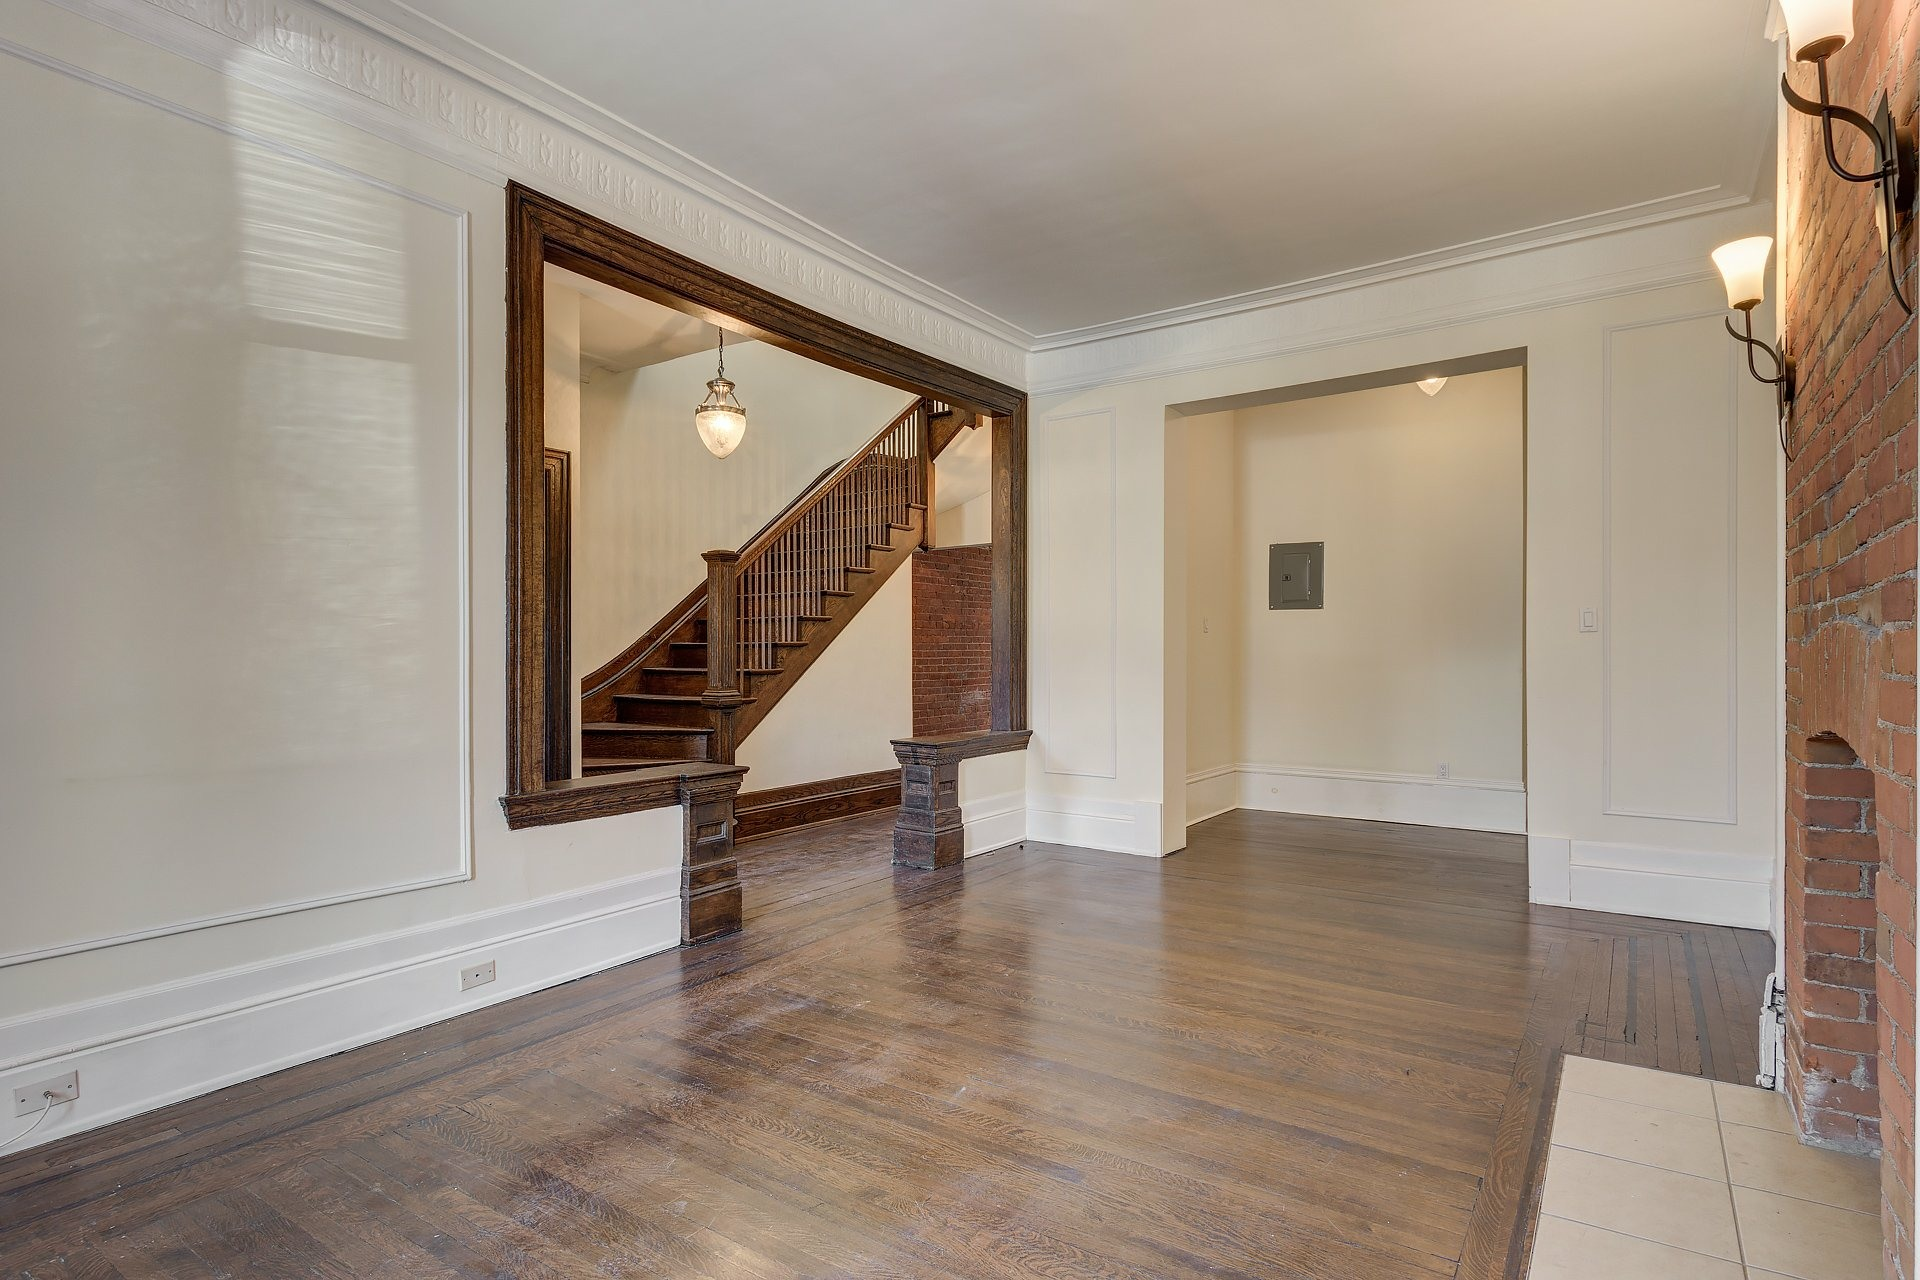 image 2 - House For rent Westmount - 9 rooms